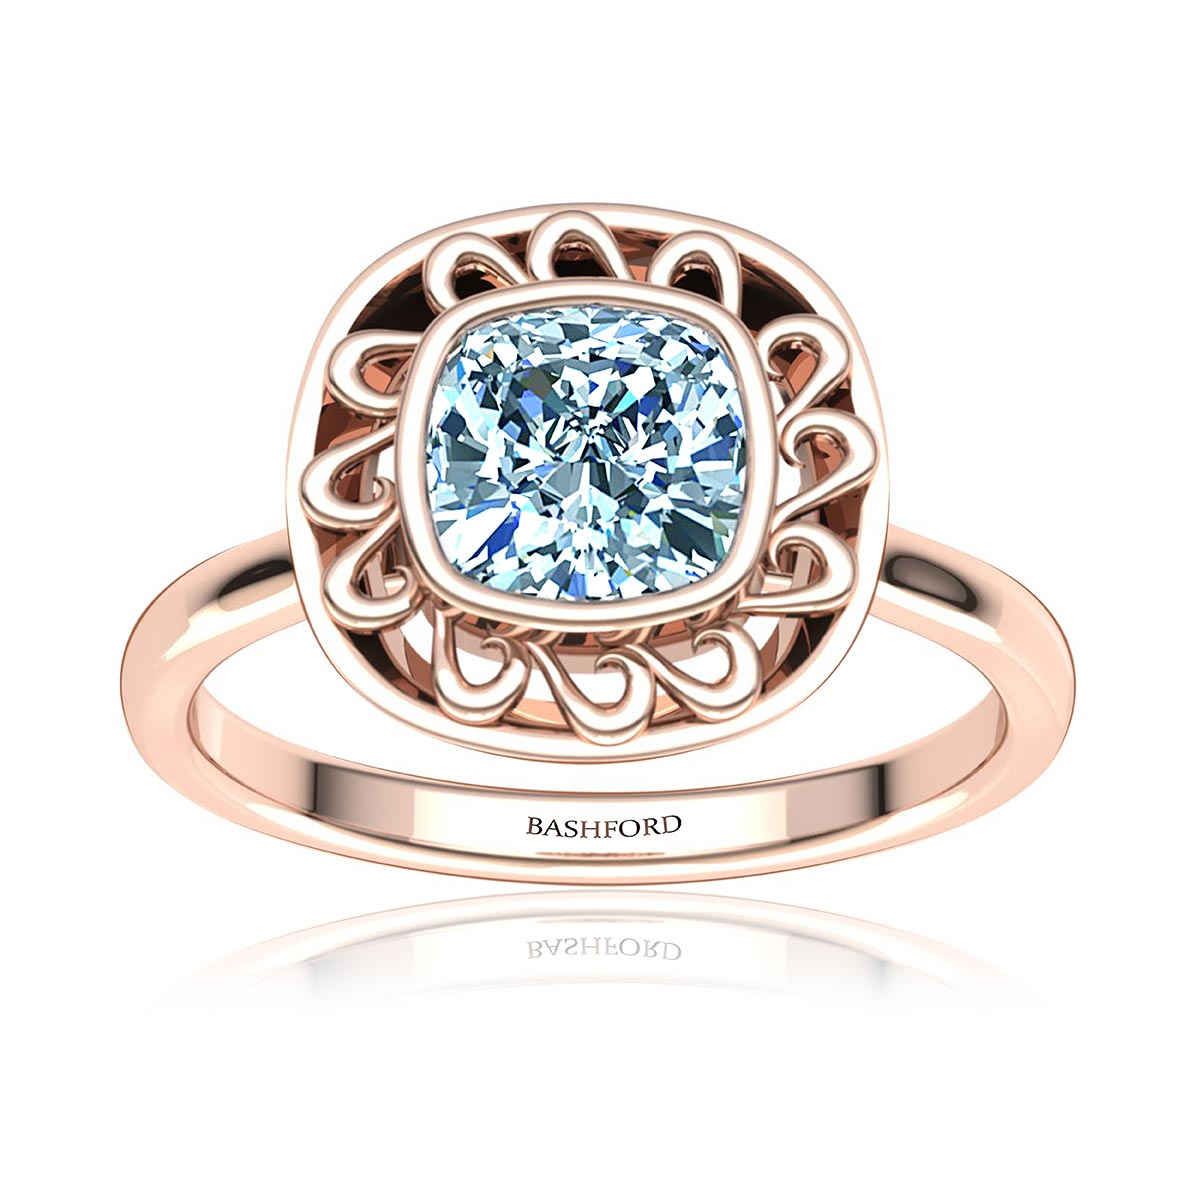 Asterion Moissanite Ring (with 1 Carat Cushion Forever One)